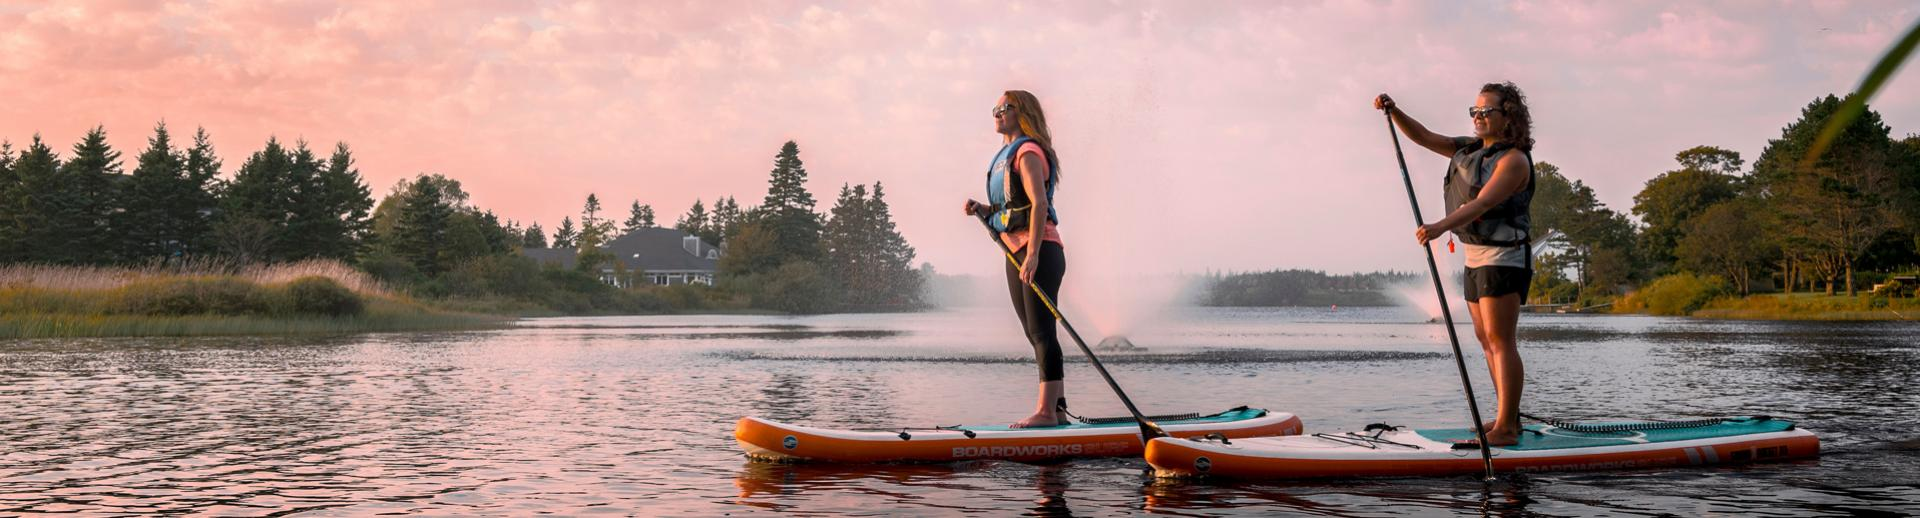 Paddleboarding in Lake Milo in Yarmouth, Nova Scotia